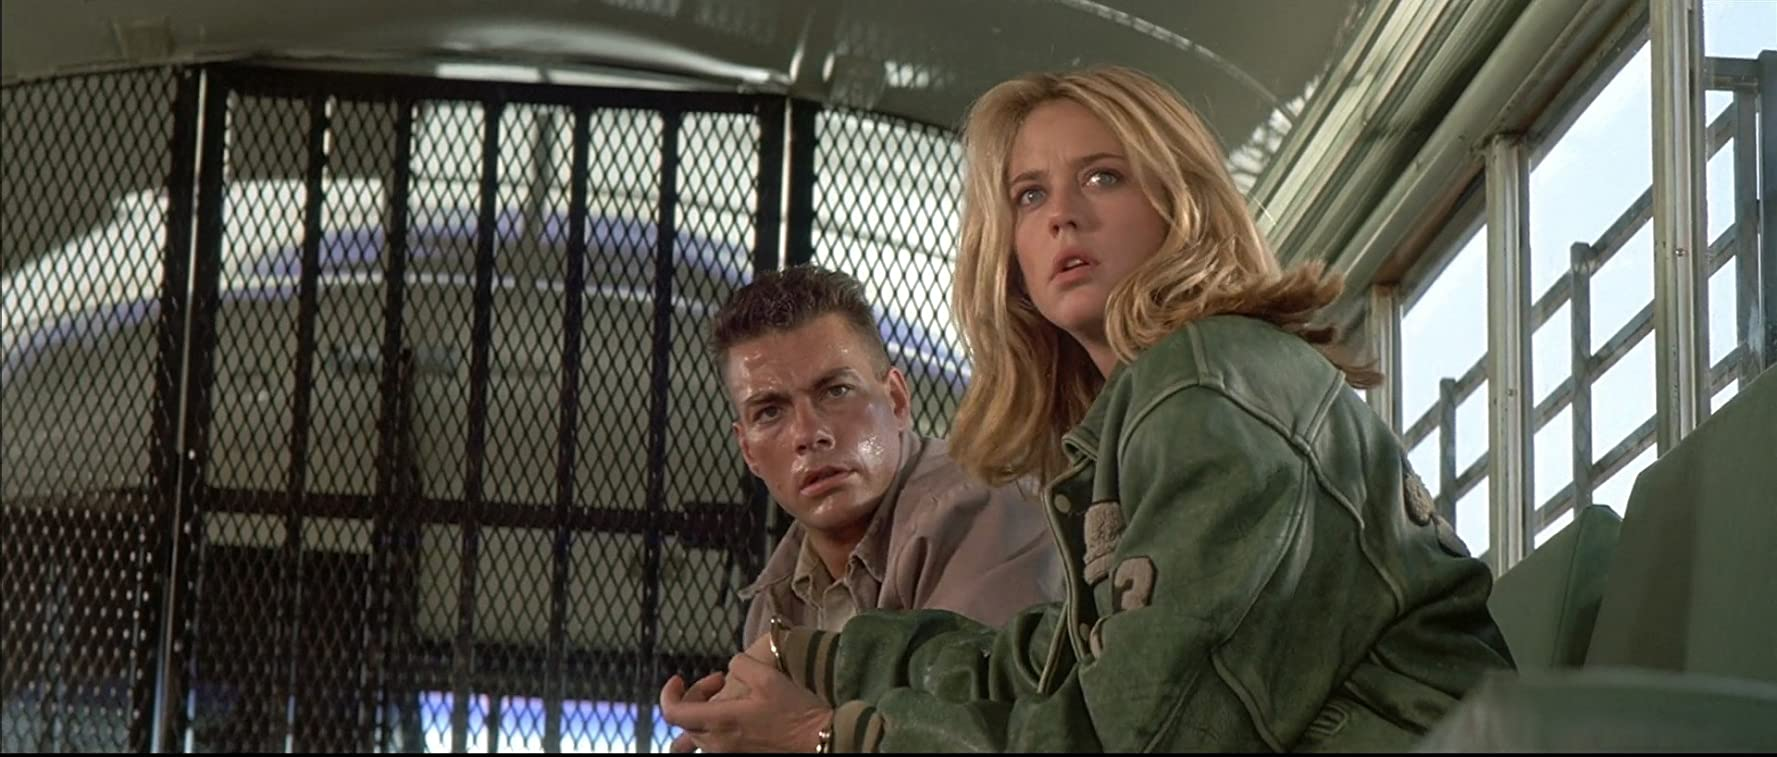 Jean-Claude Van Damme and Ally Walker in Universal Soldier (1992)